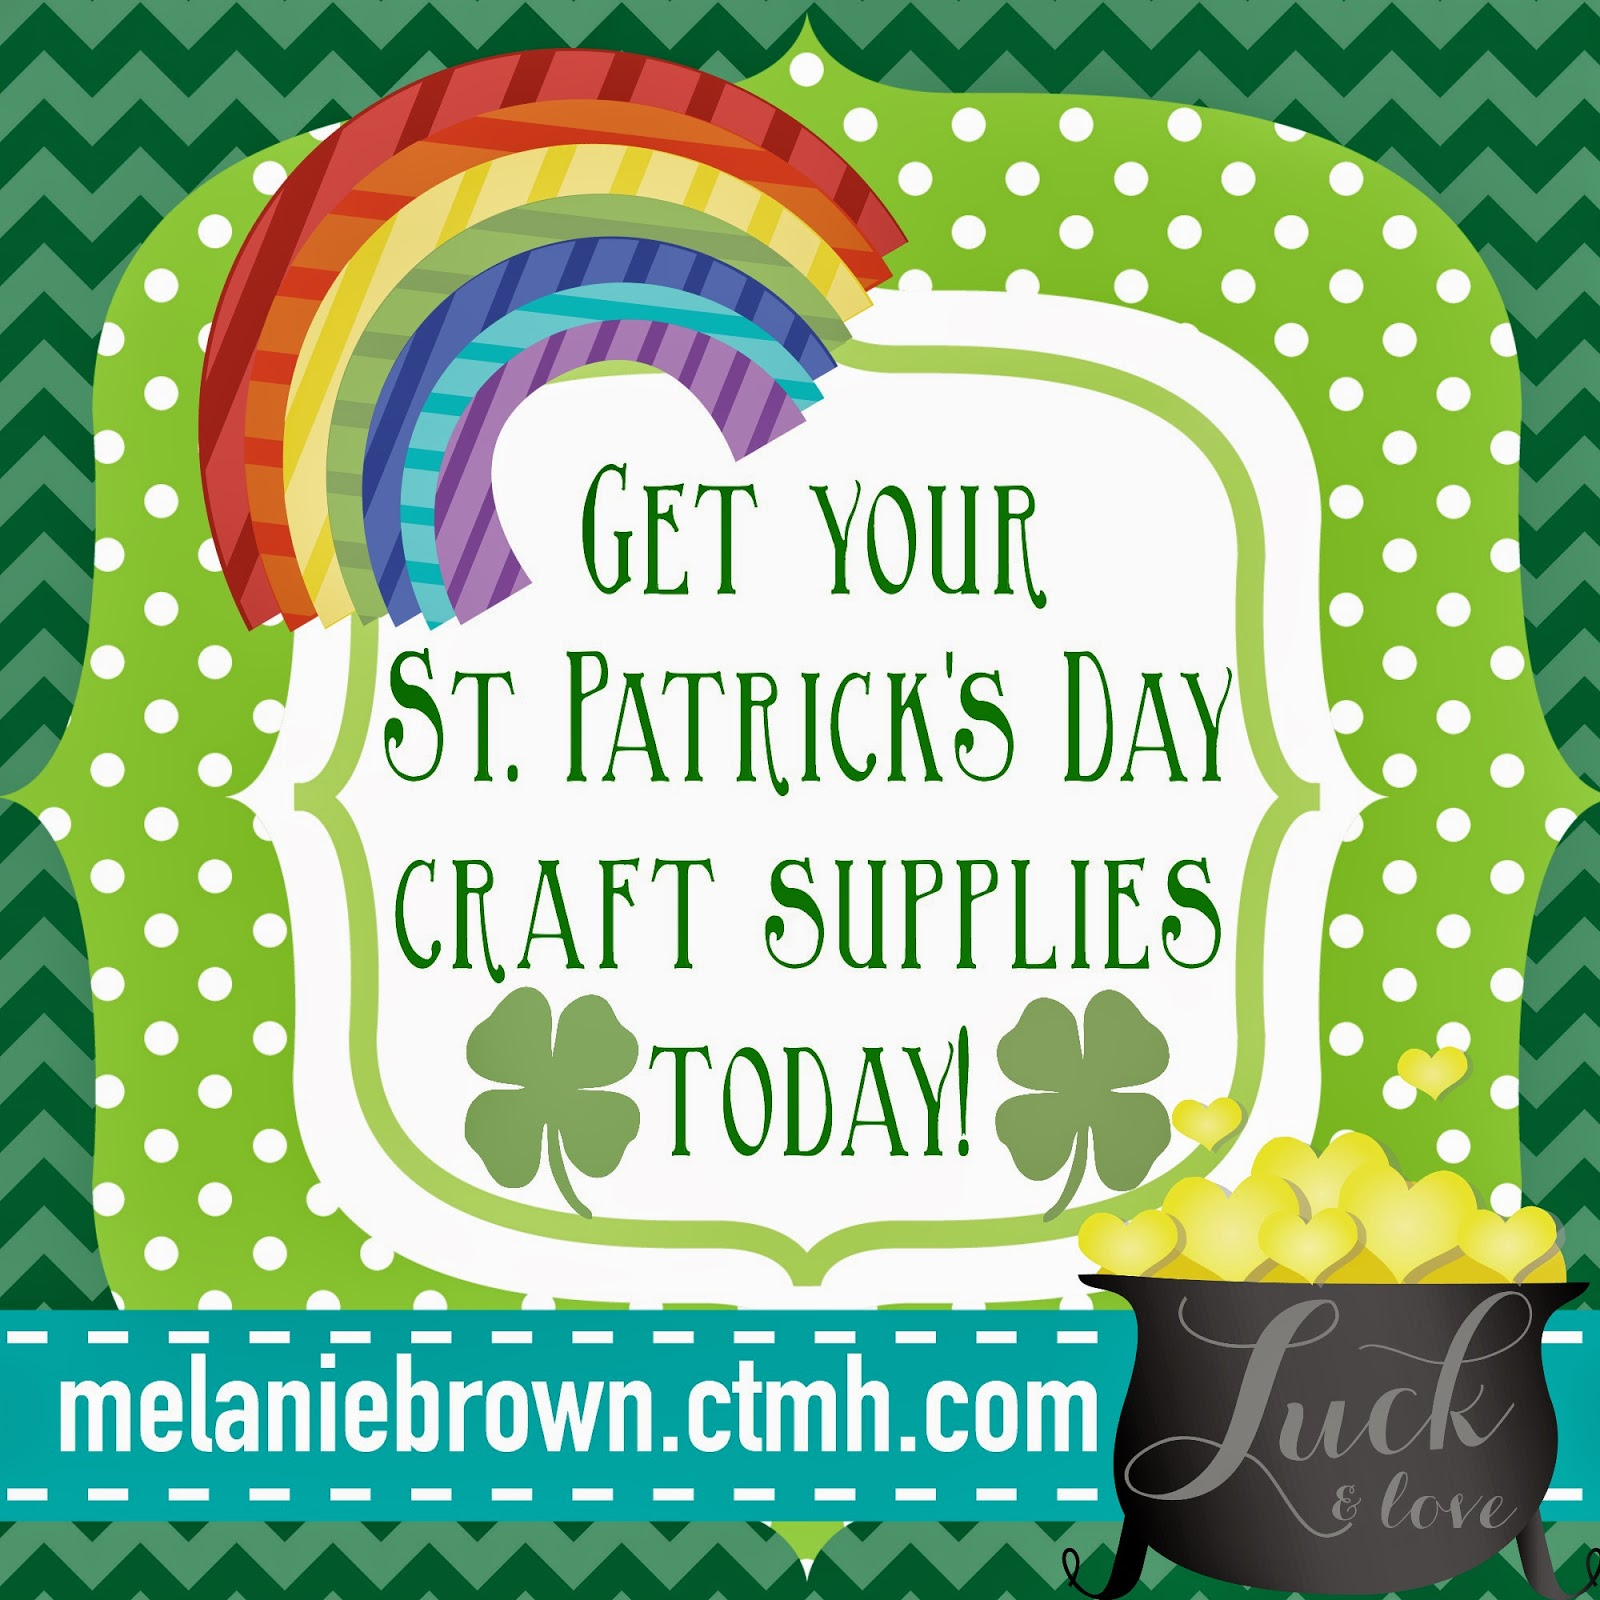 St. Patrick's Day themed crafting supplies